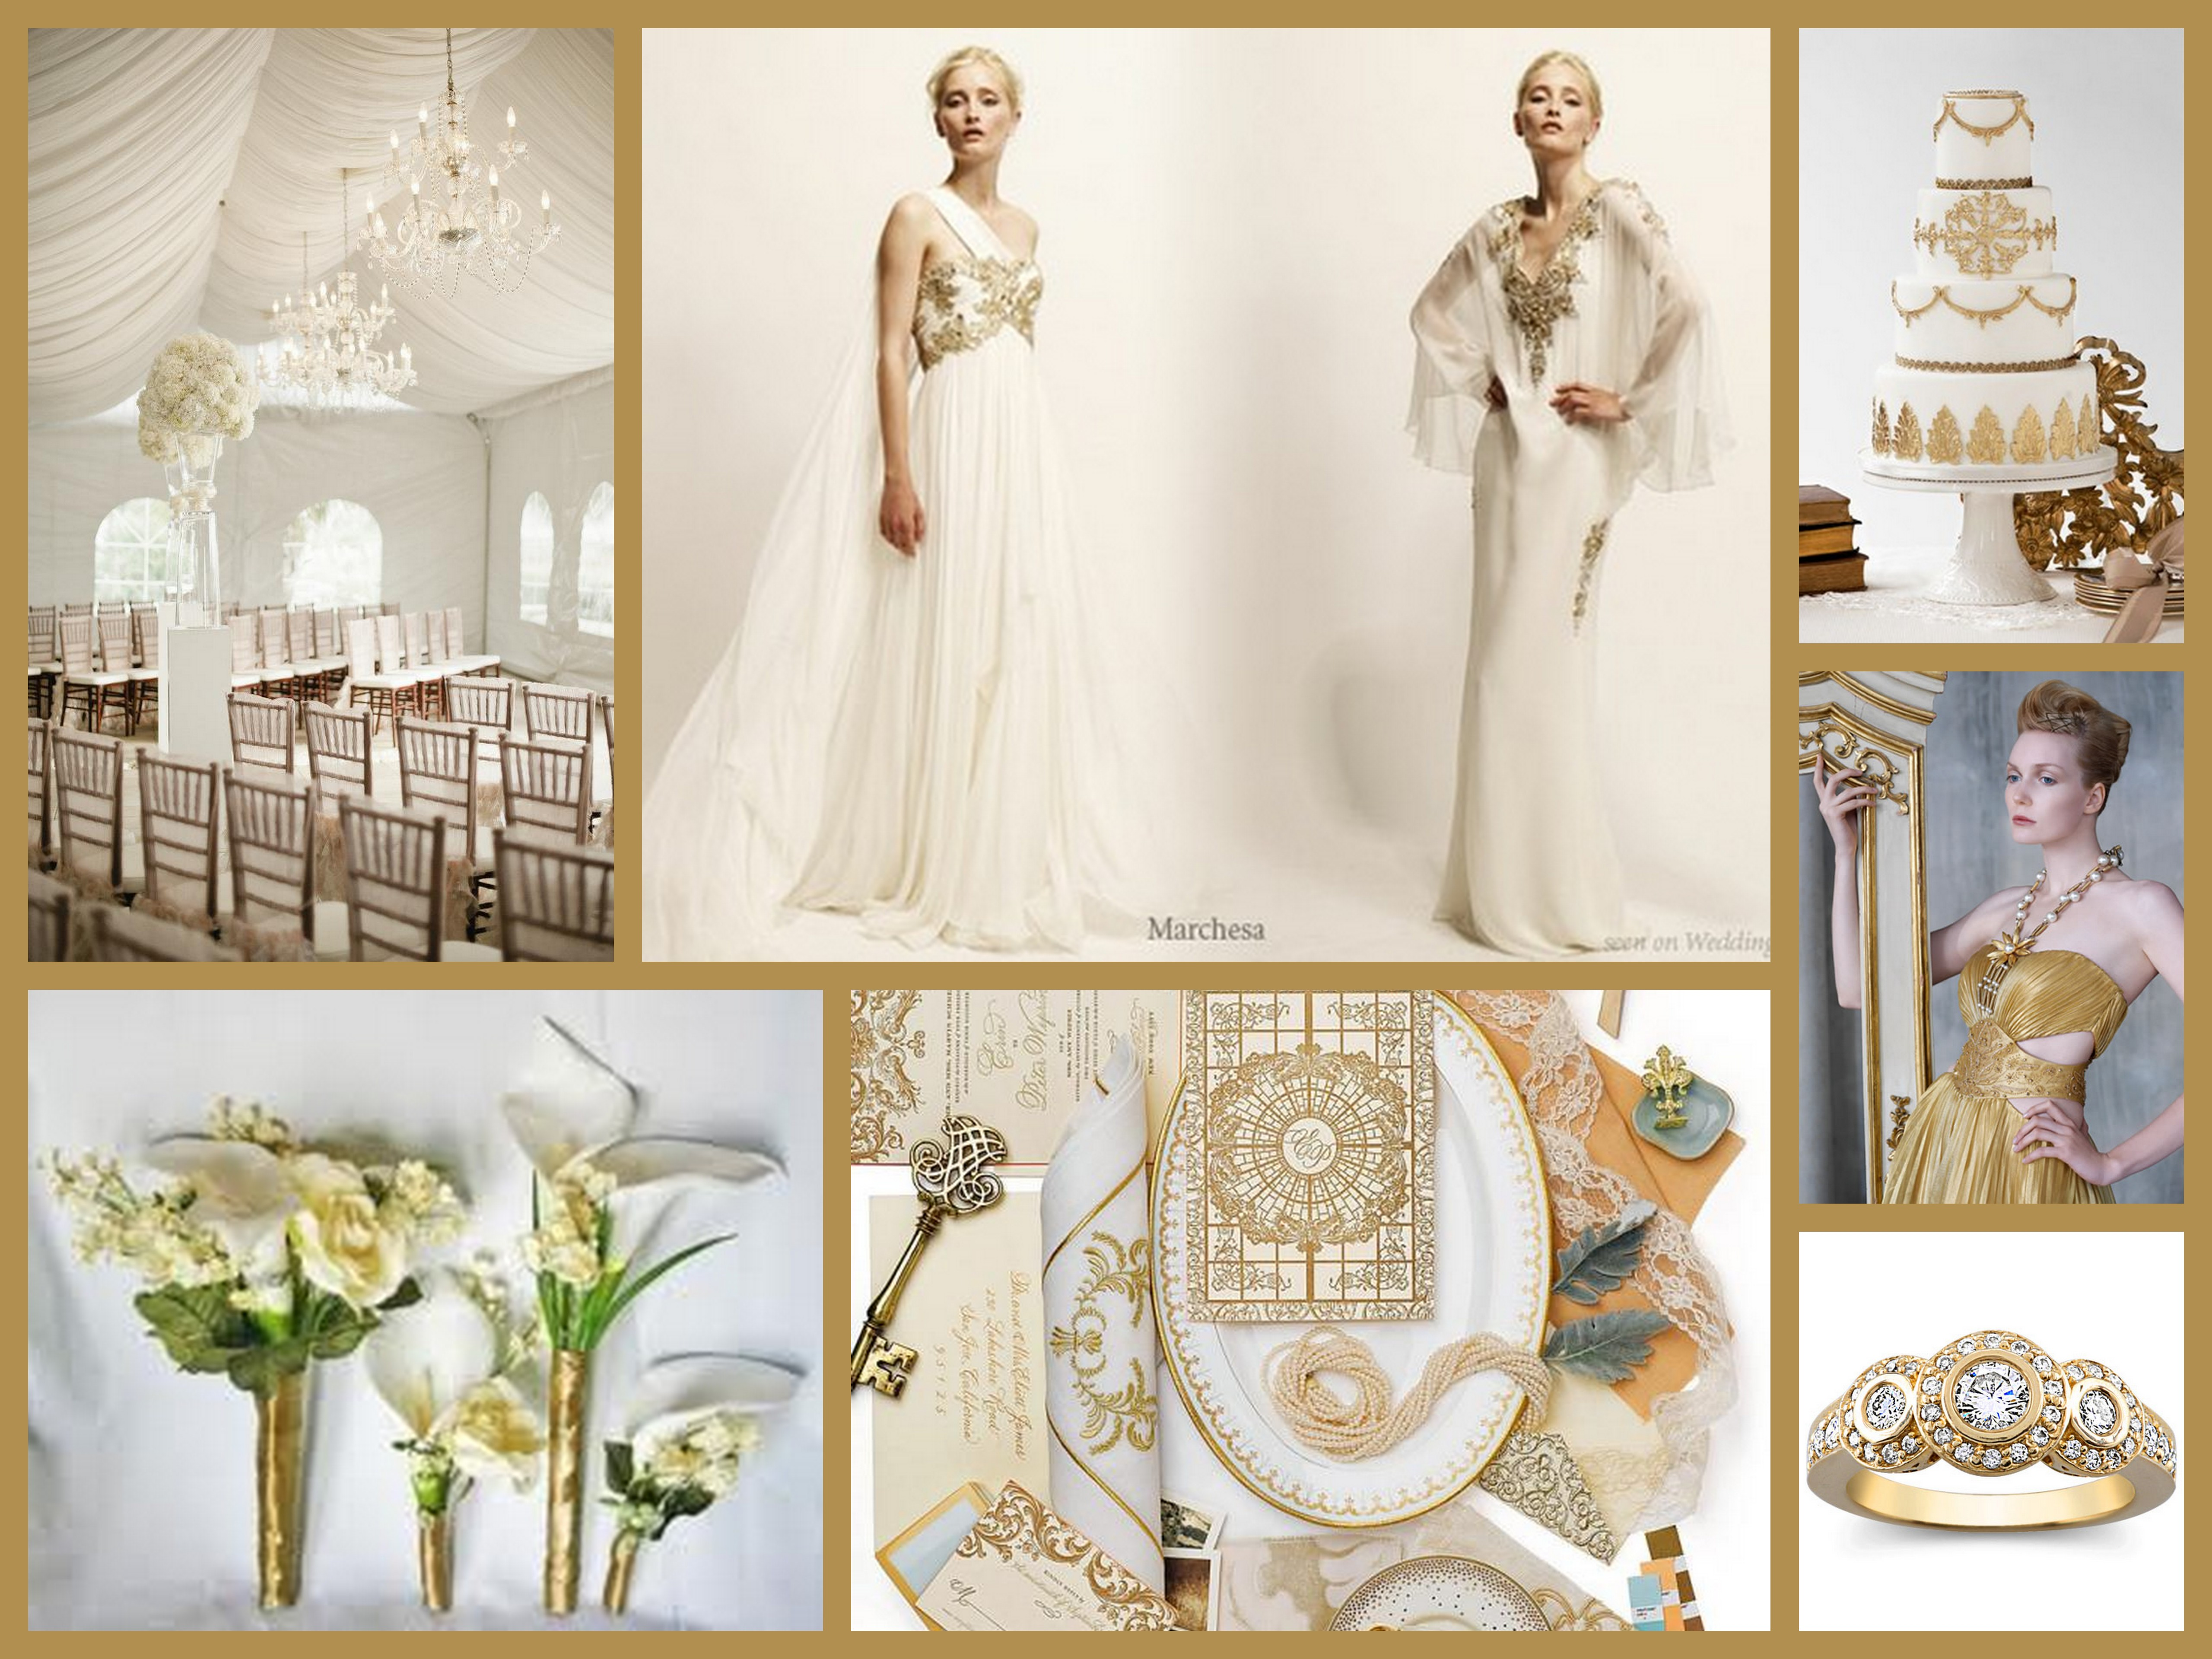 White Gold Goddess Wedding Inspiration | Fantastical Wedding Stylings